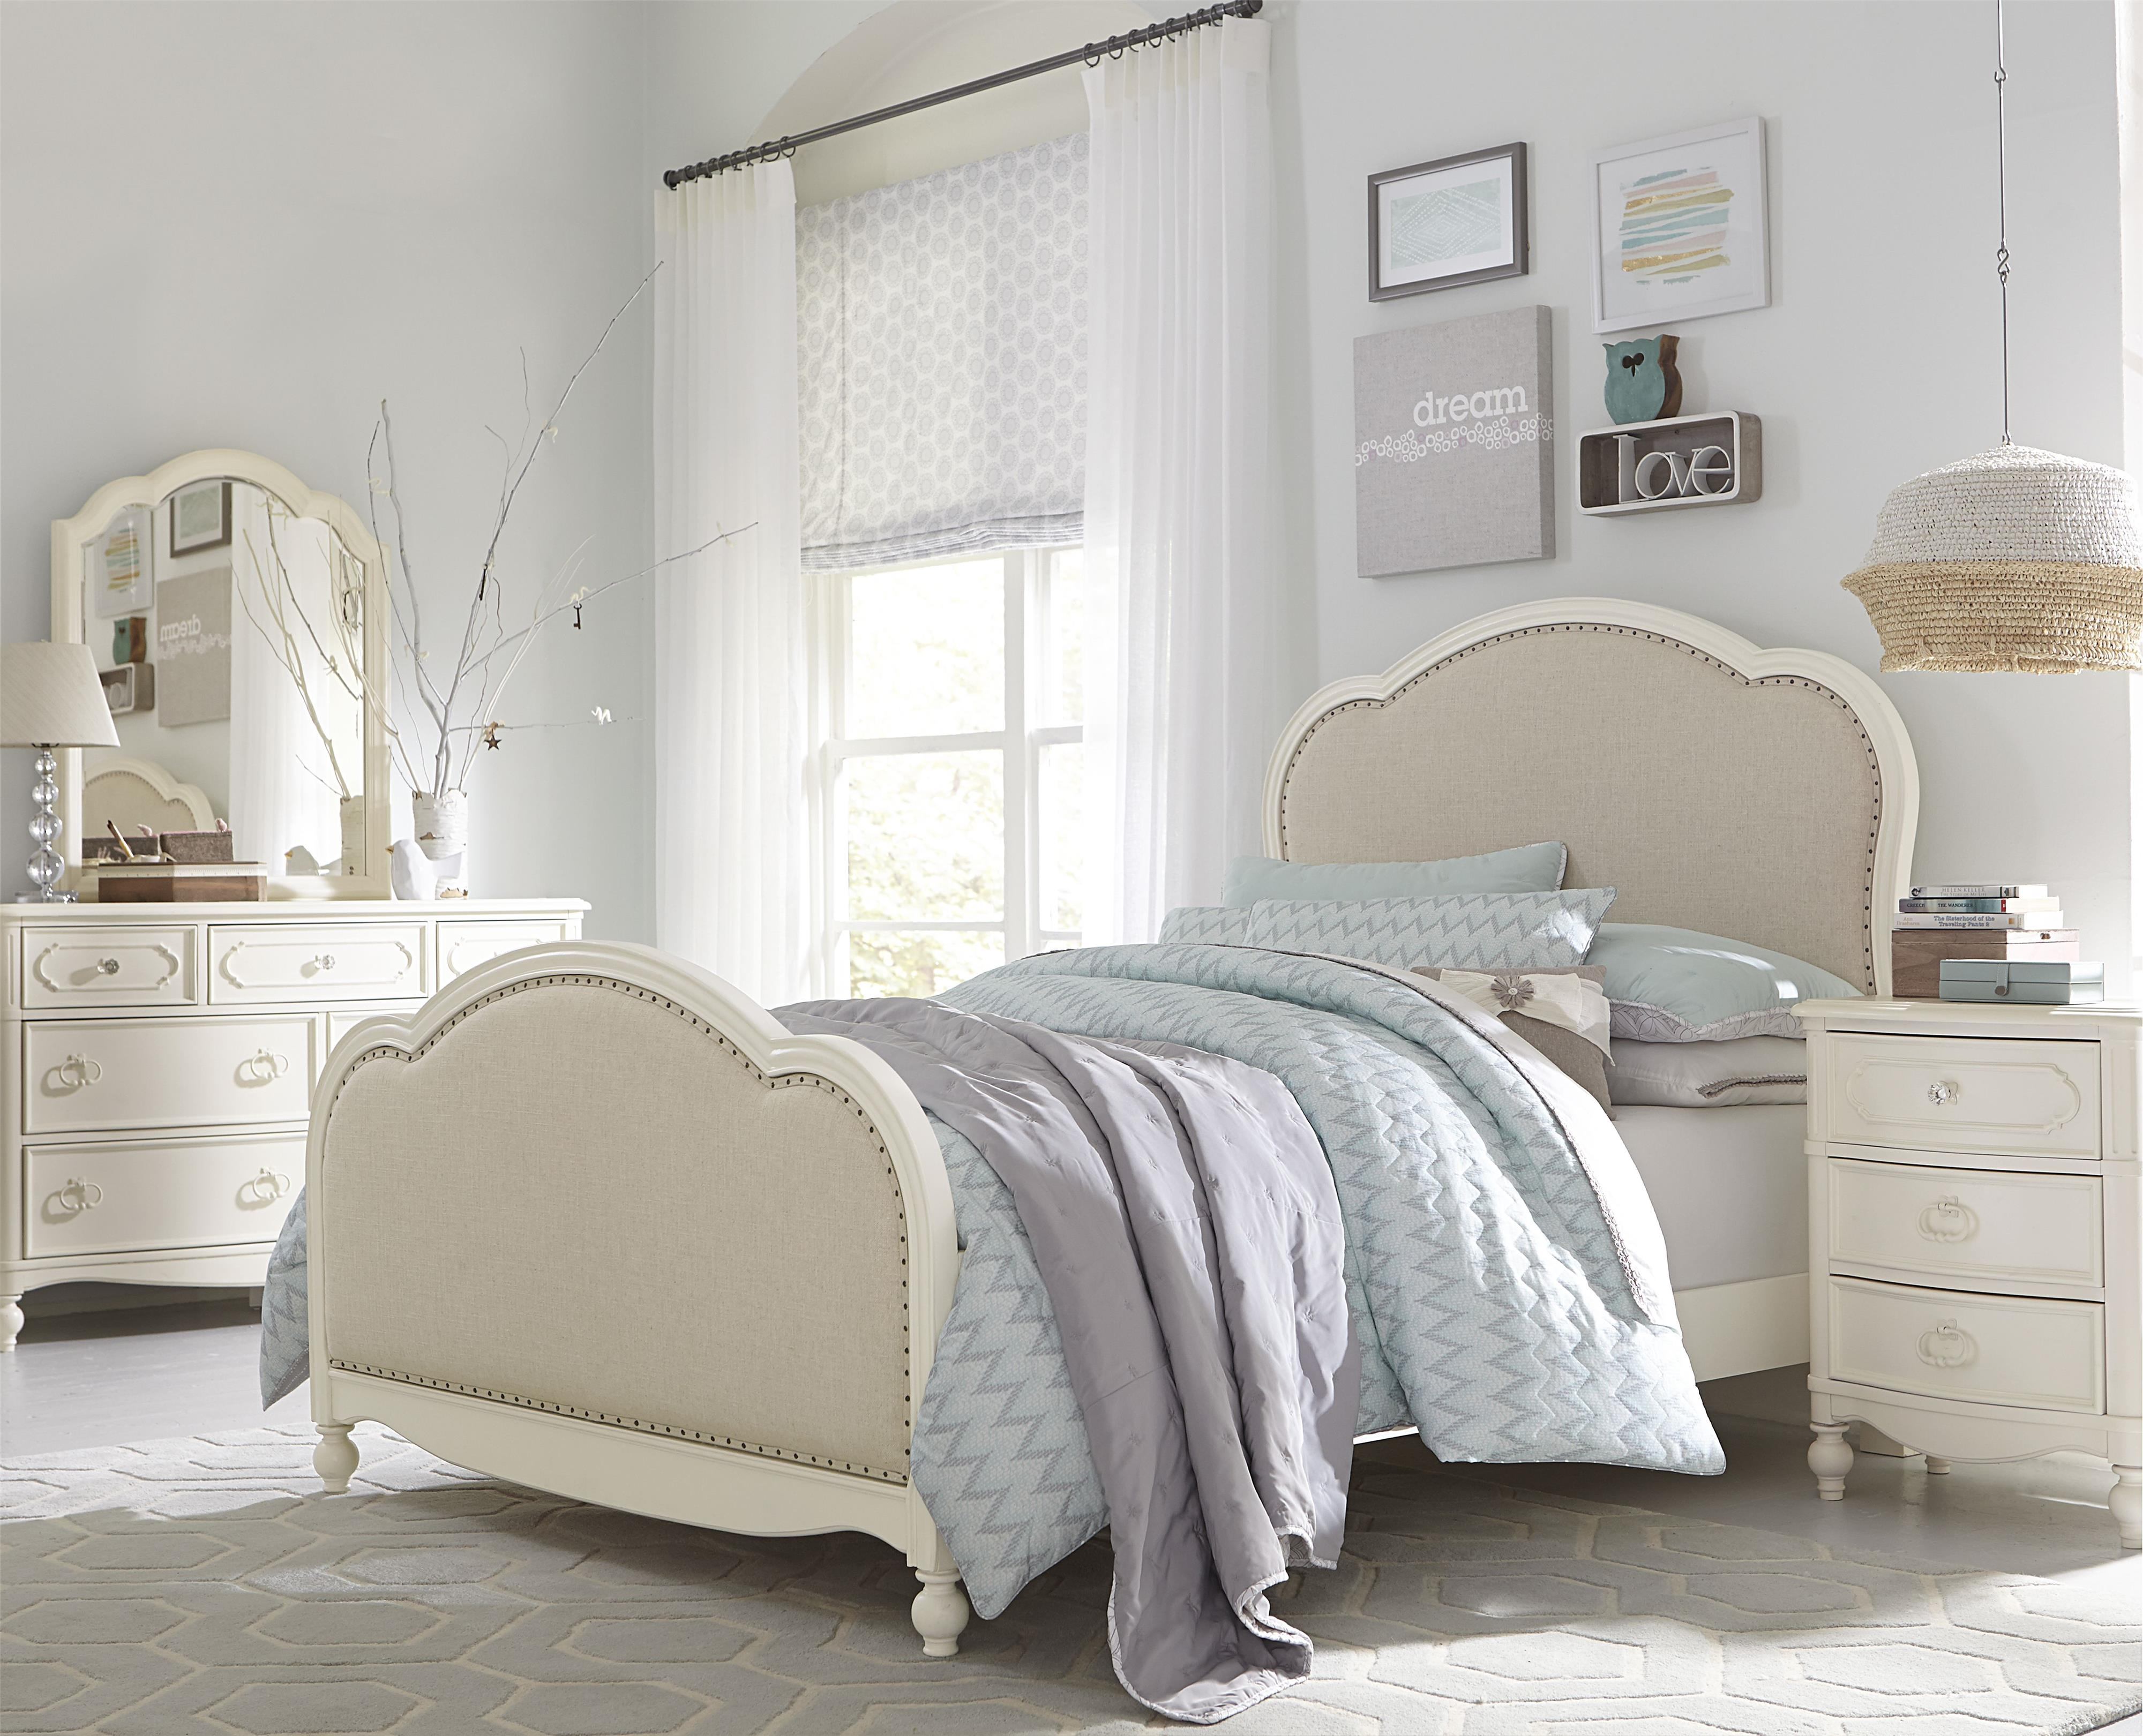 victoria upholstered panel full bed. victoria panel full bed with upholstered tea stain woven fabric by